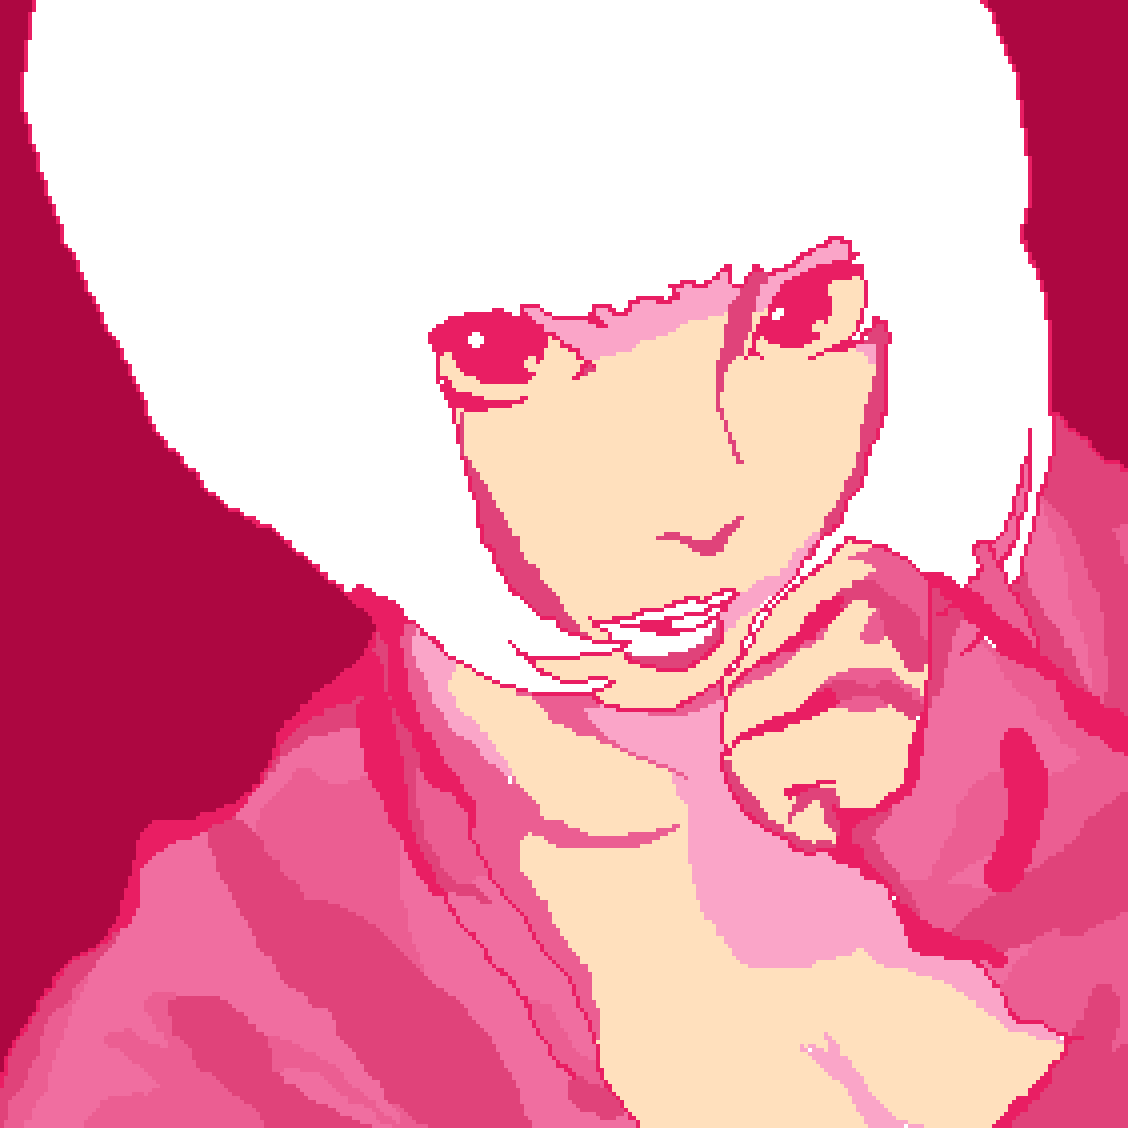 WIP short haired girl pink monochromatic practice by Hmusqe